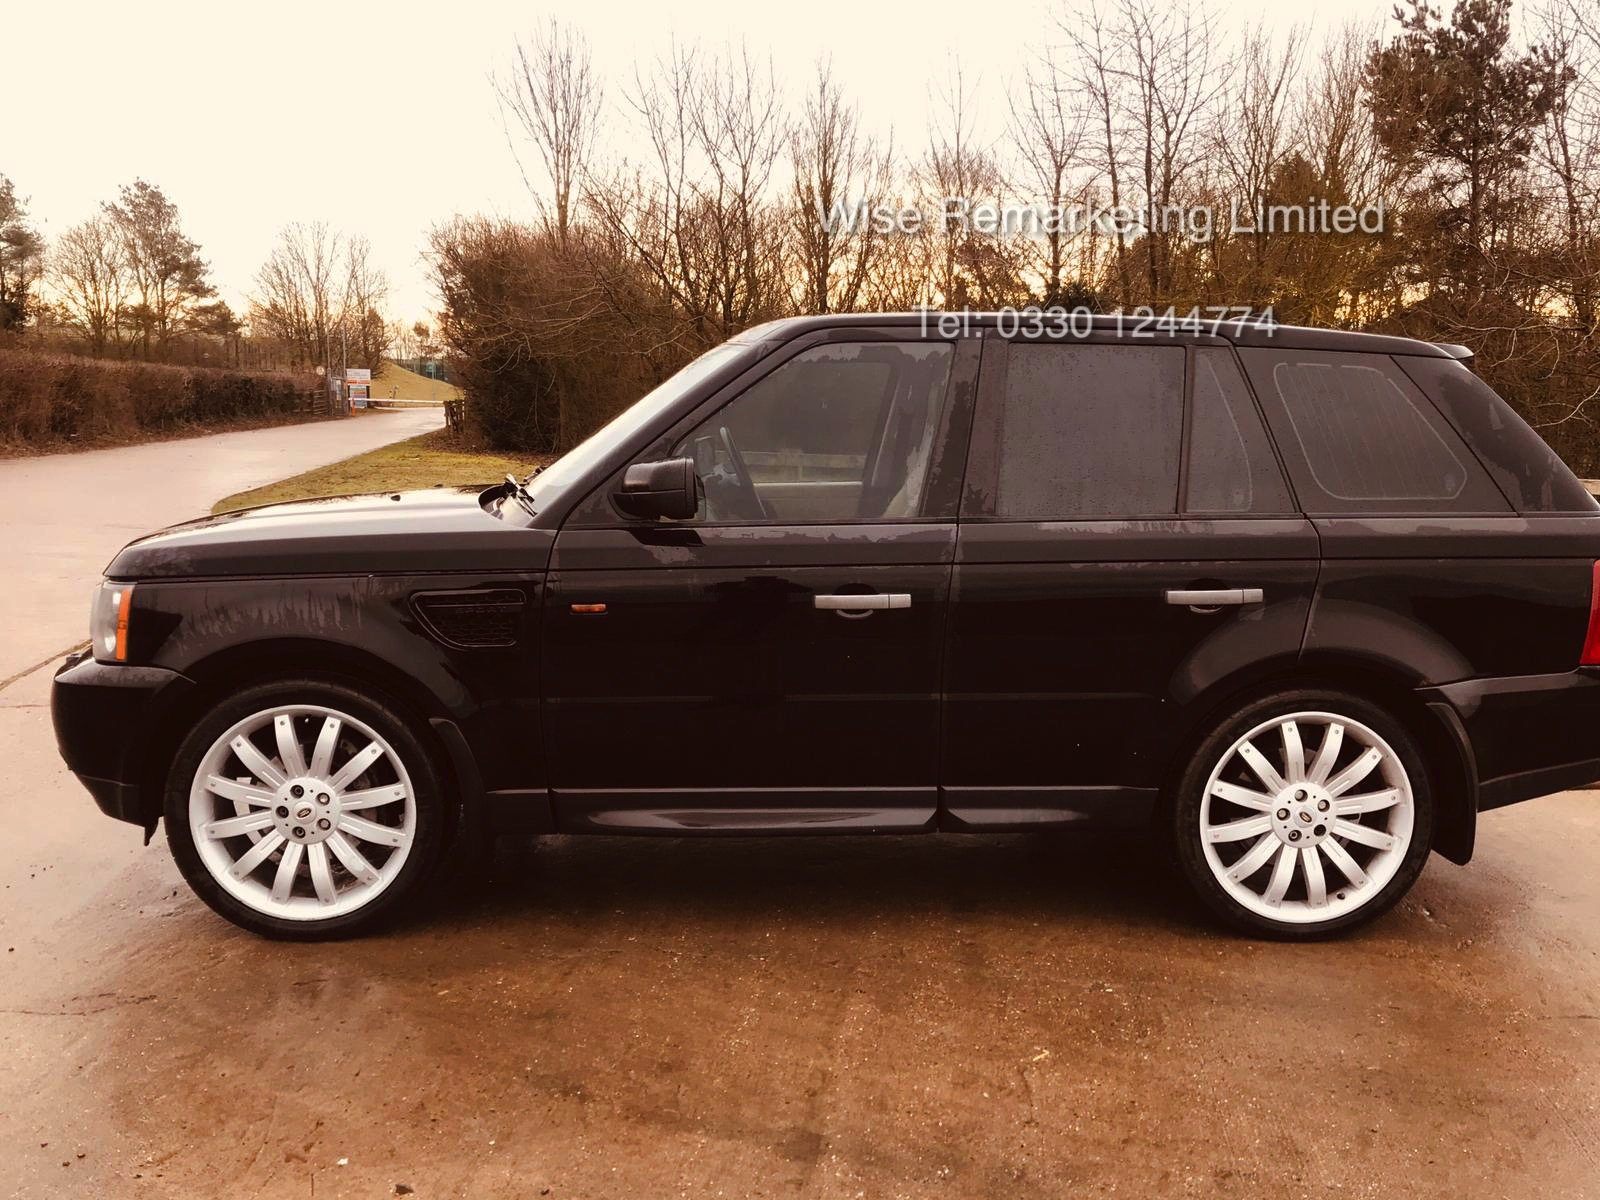 Range Rover Sport 2.7 TDV6 HSE Auto - 2008 Model - Cream Leather - Sat Nav - Heated Seats - Image 5 of 19